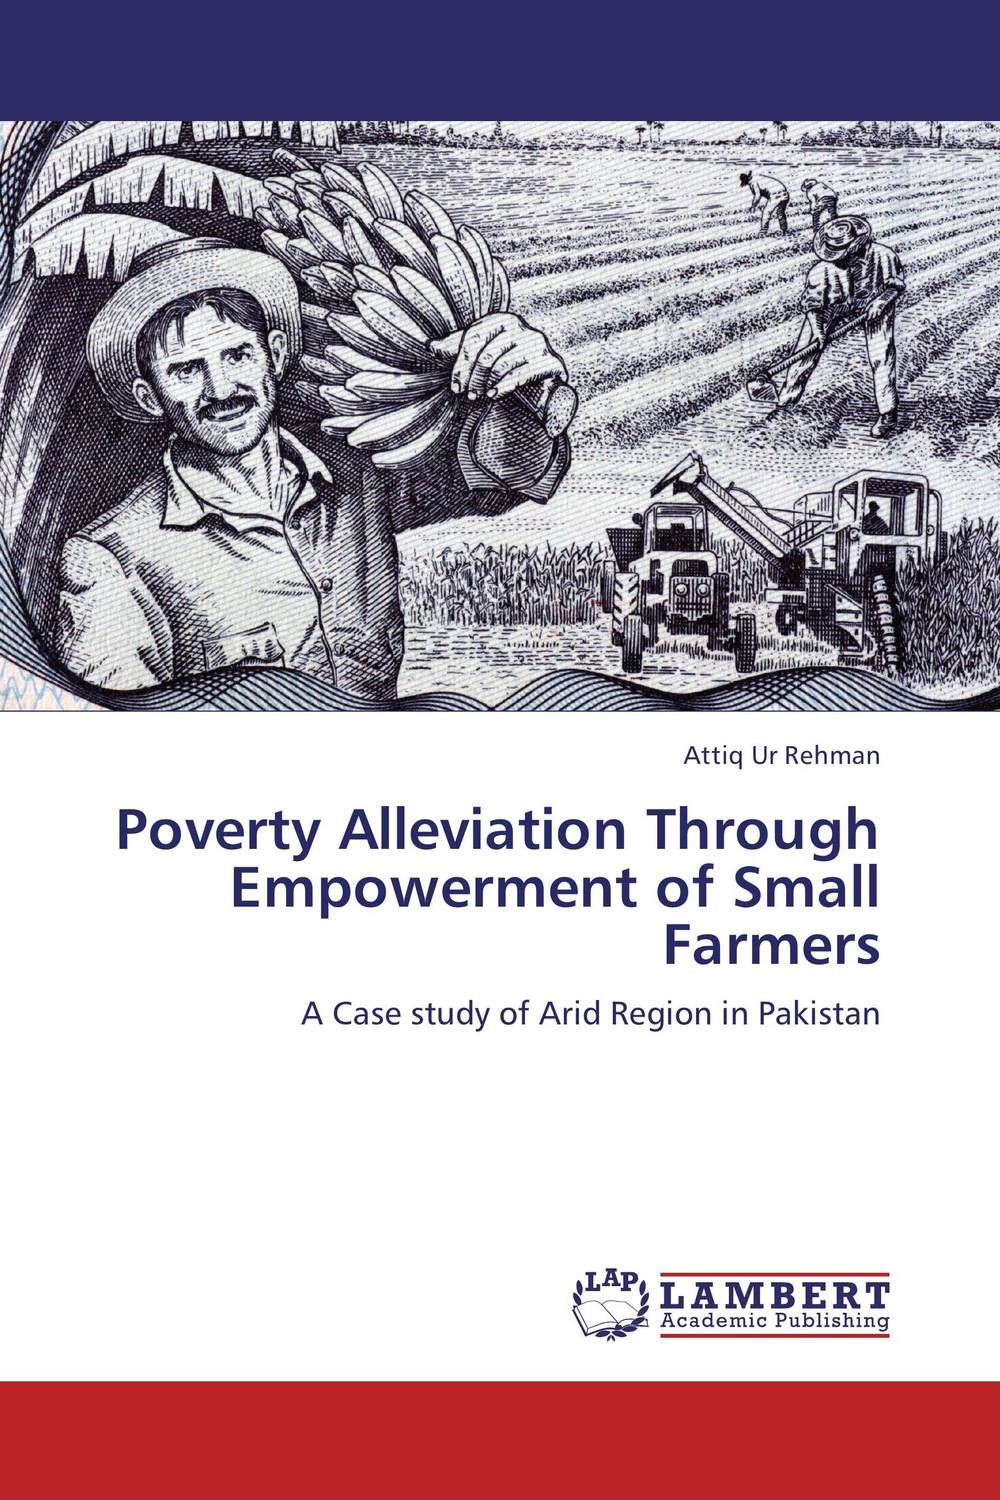 Poverty Alleviation Through Empowerment of Small Farmers